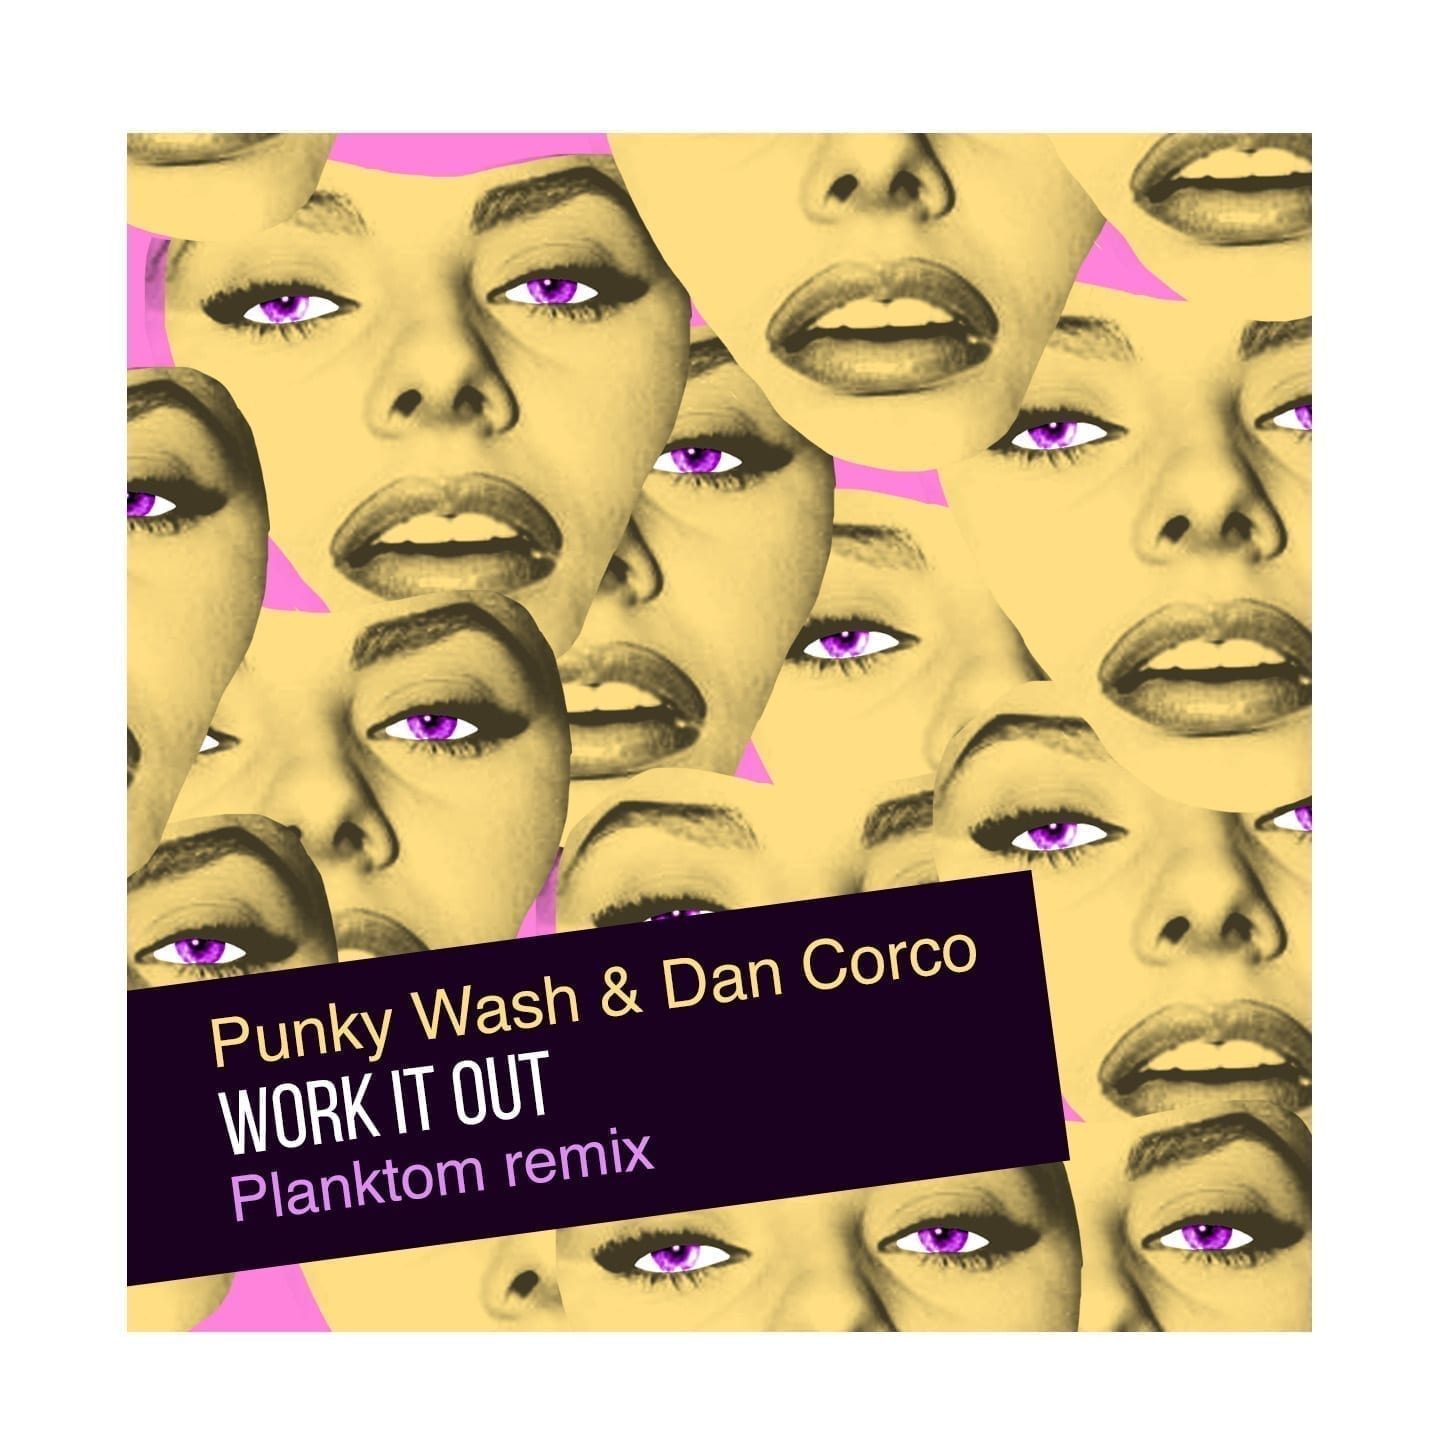 """Punky Wash & Dan Corco join their forces to produce """"Work it out"""""""